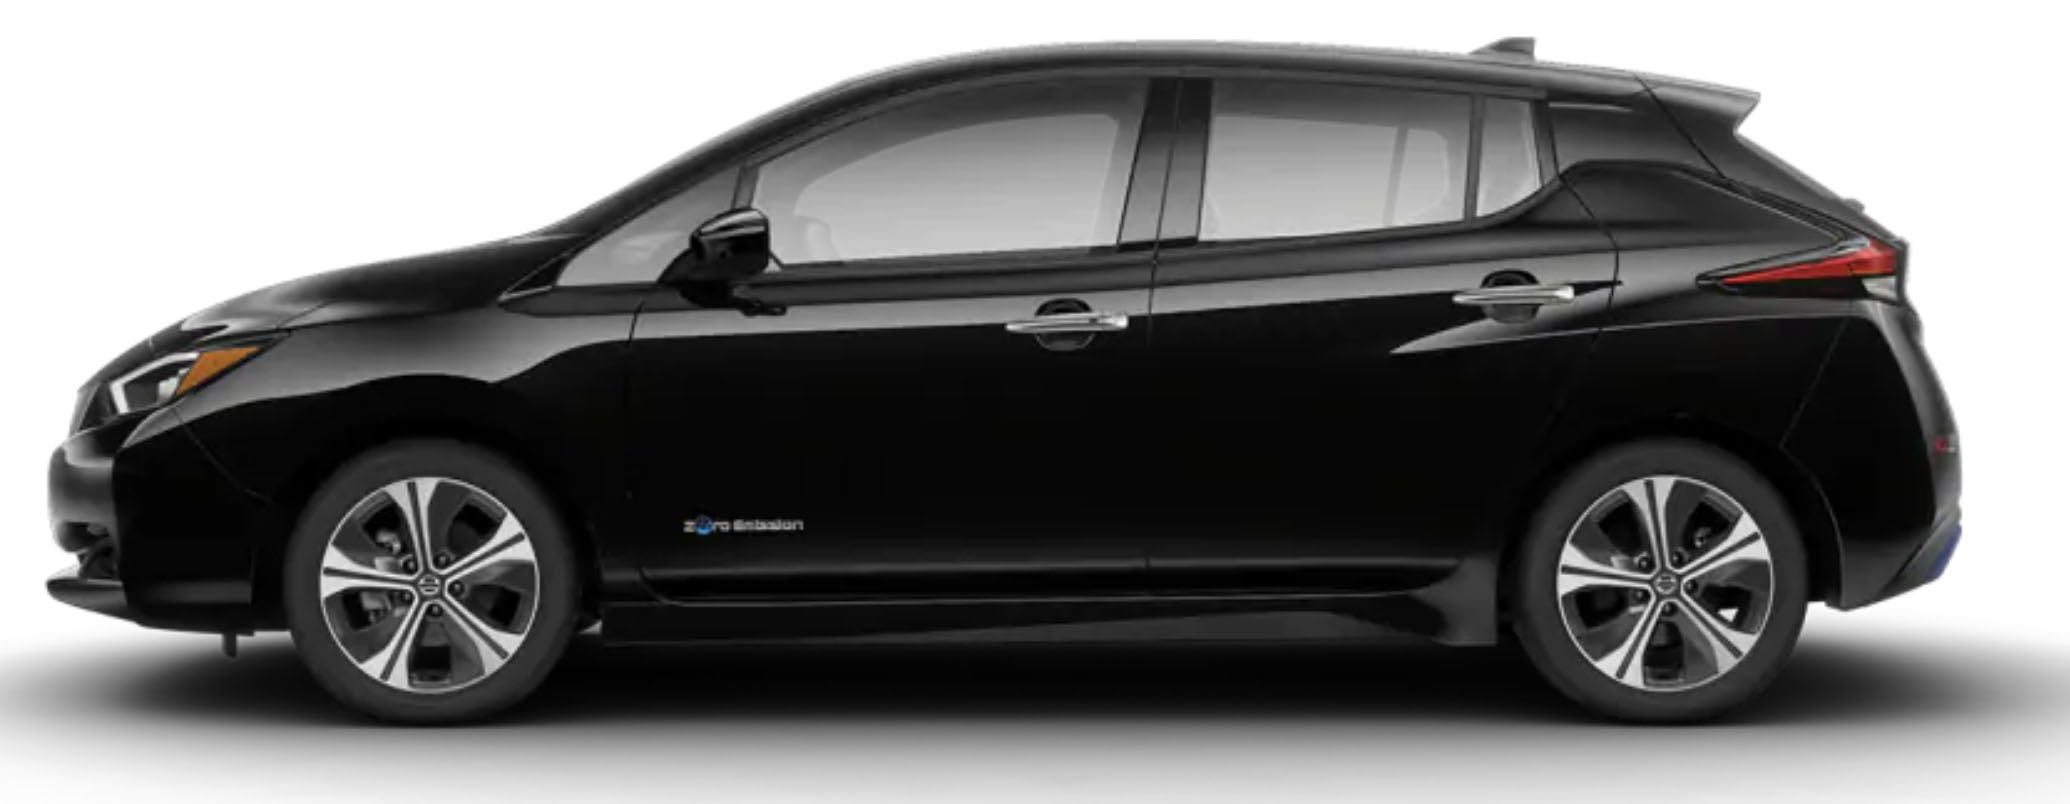 Side-view of 2019 Nissan Leaf electric car in super black color against a white background.